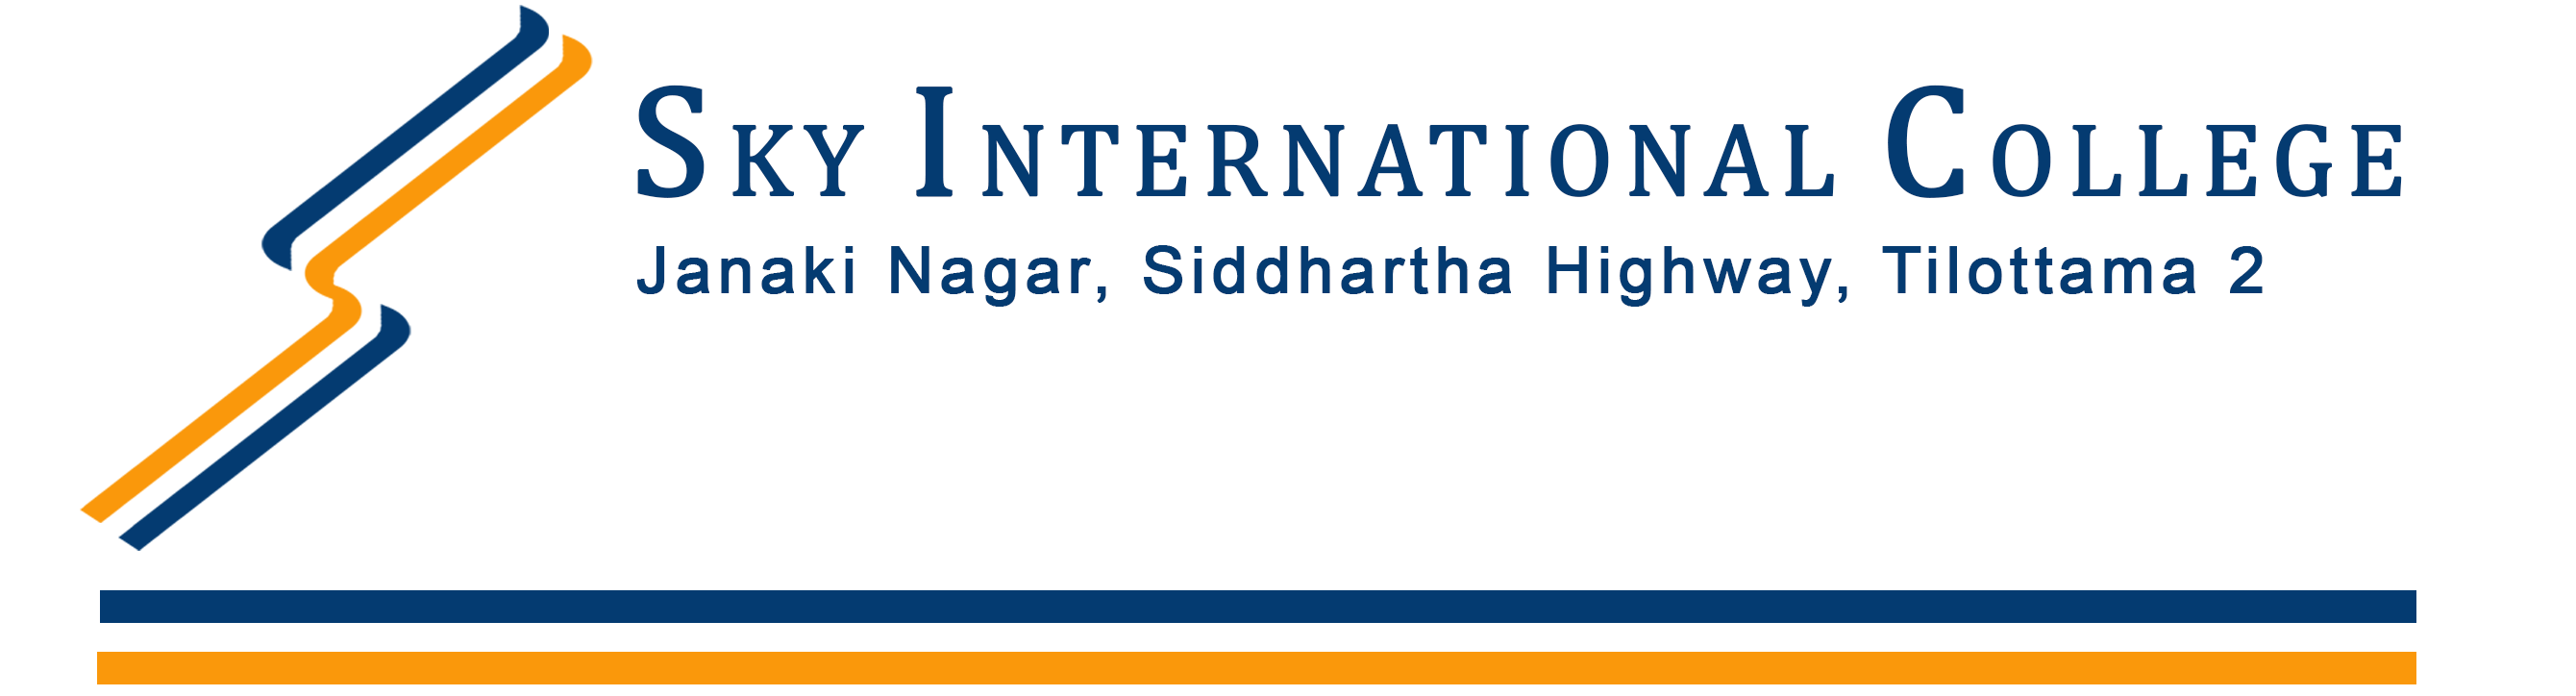 Sky International college